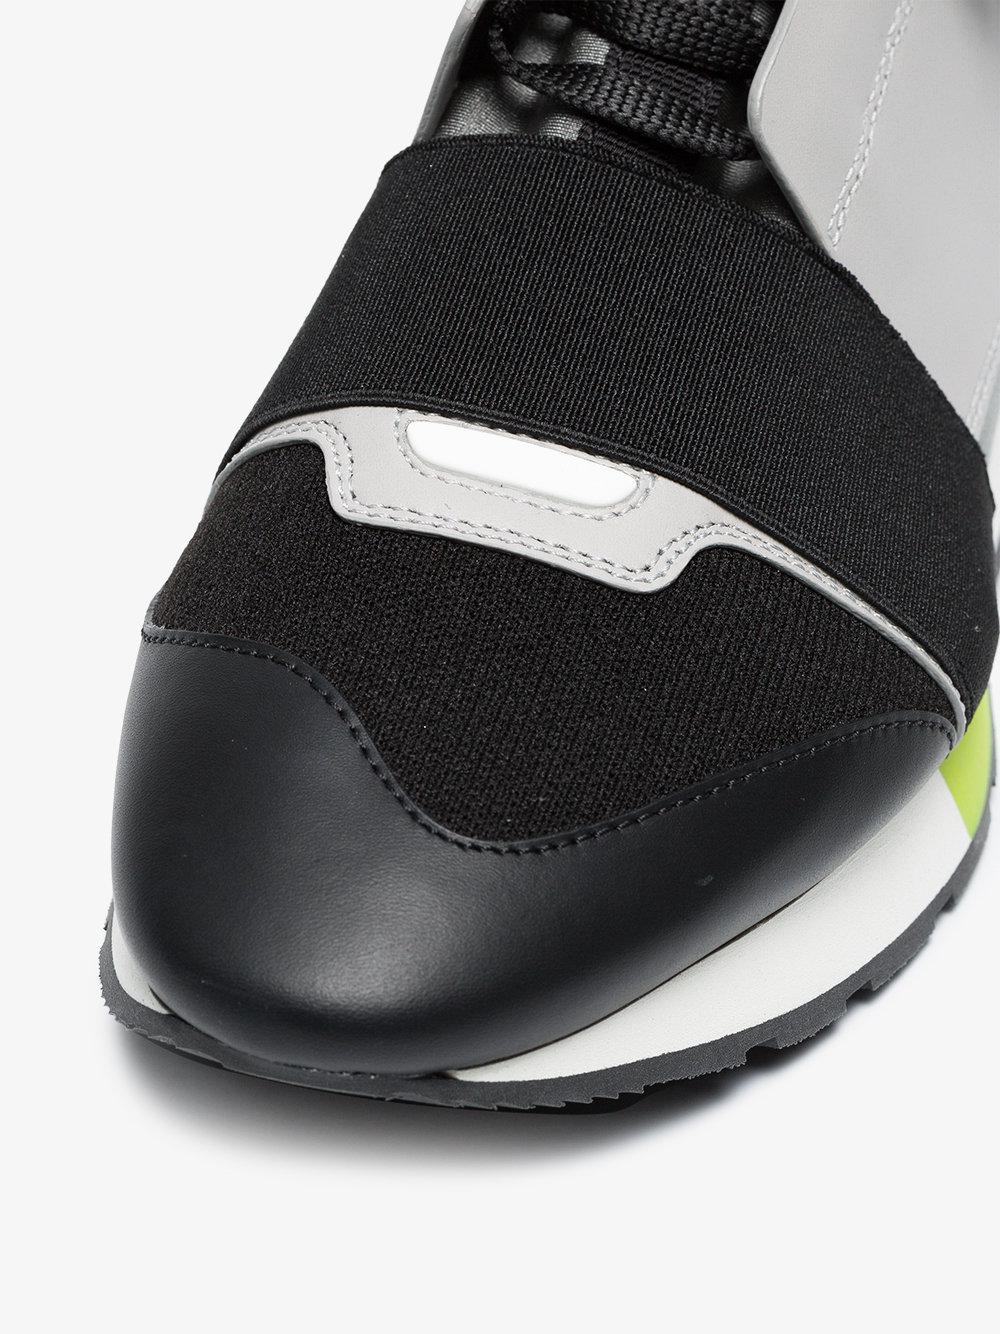 Black, Grey and Neon Race Runner Leather Sneakers Balenciaga